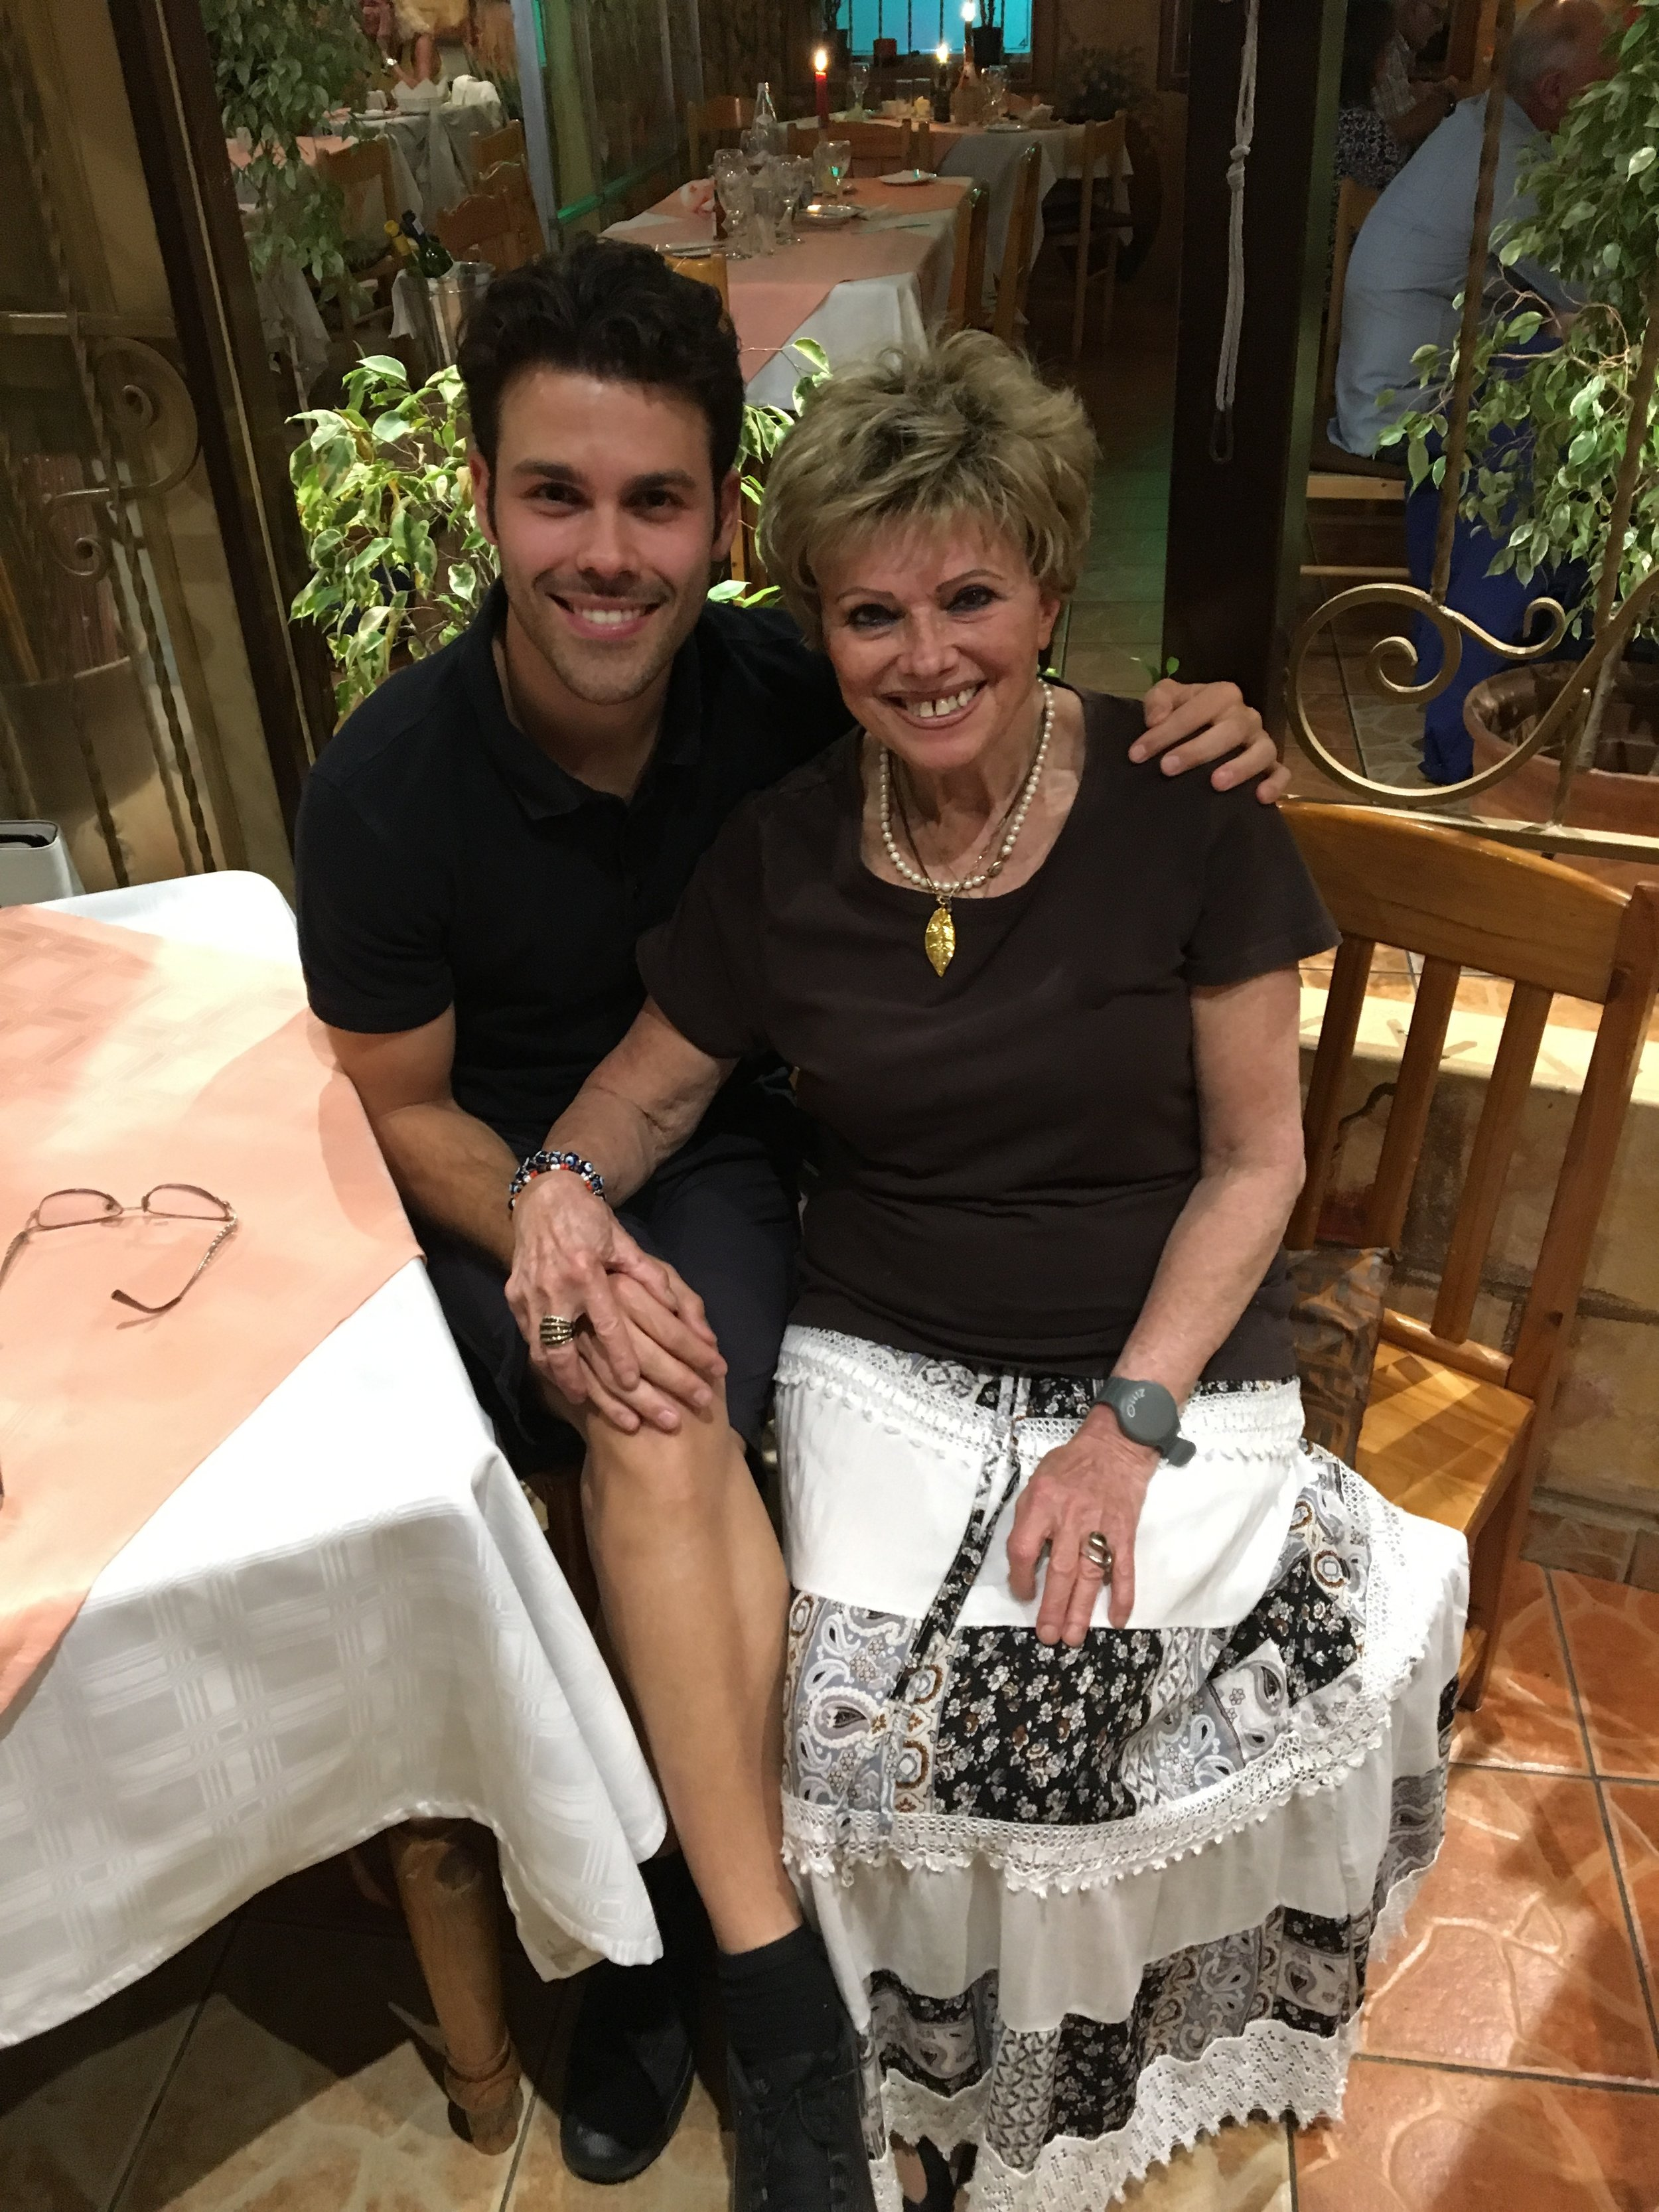 This is Grazziella - She owns the most authentic Italian restaurant in the world. Her mantra to live by is you're as young as the man you touch! #BINGO